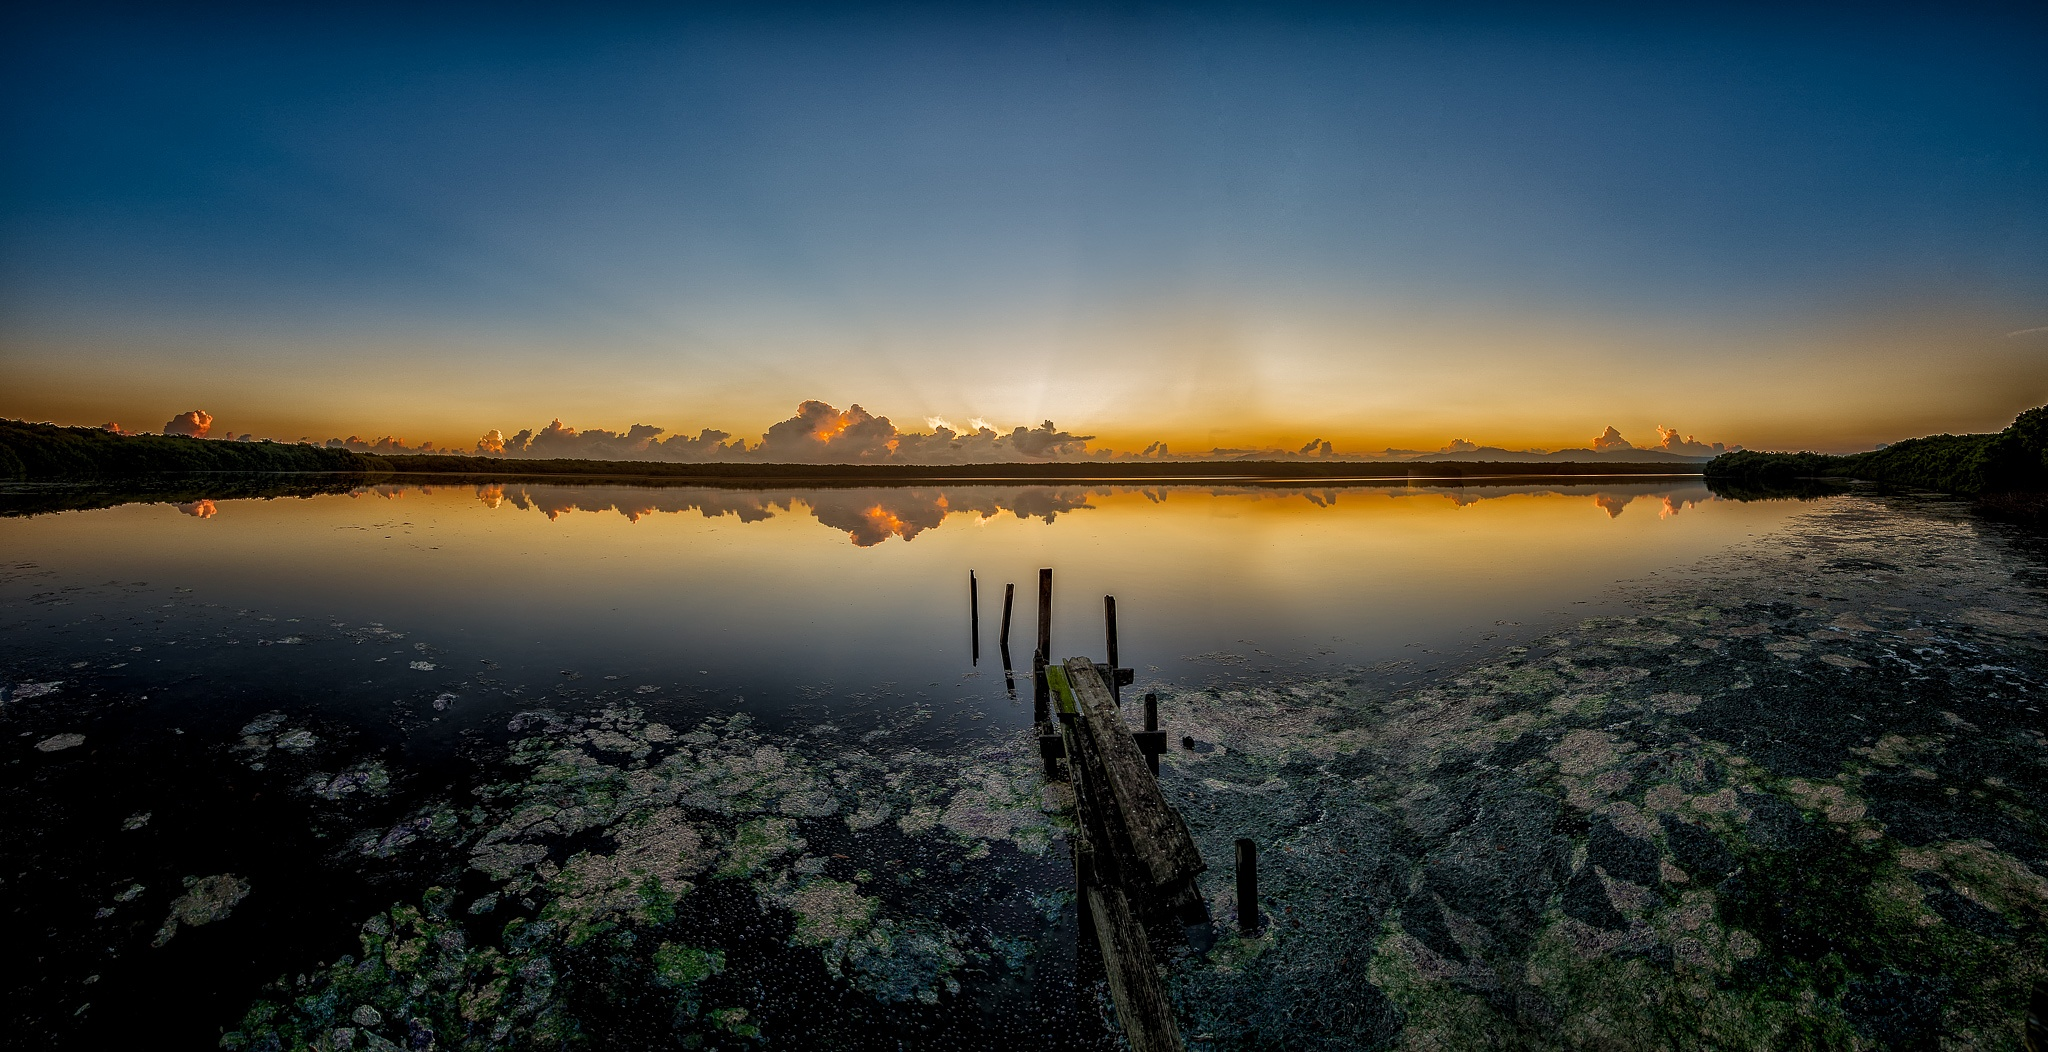 Sunrise at Piñones Puerto Rico by Pedro M. Lopez